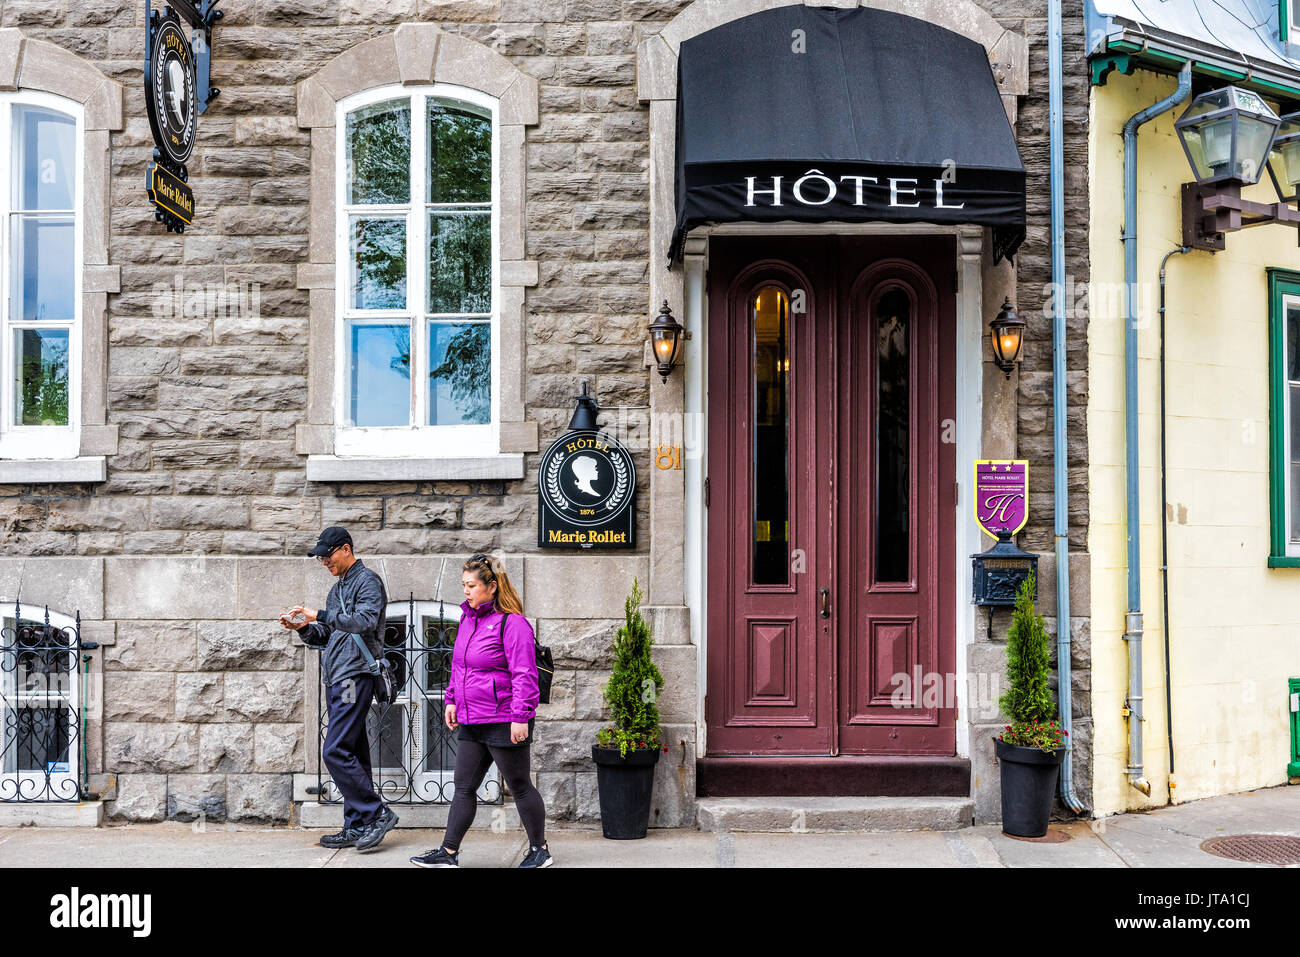 Hotel Marie Rollet Quebec City